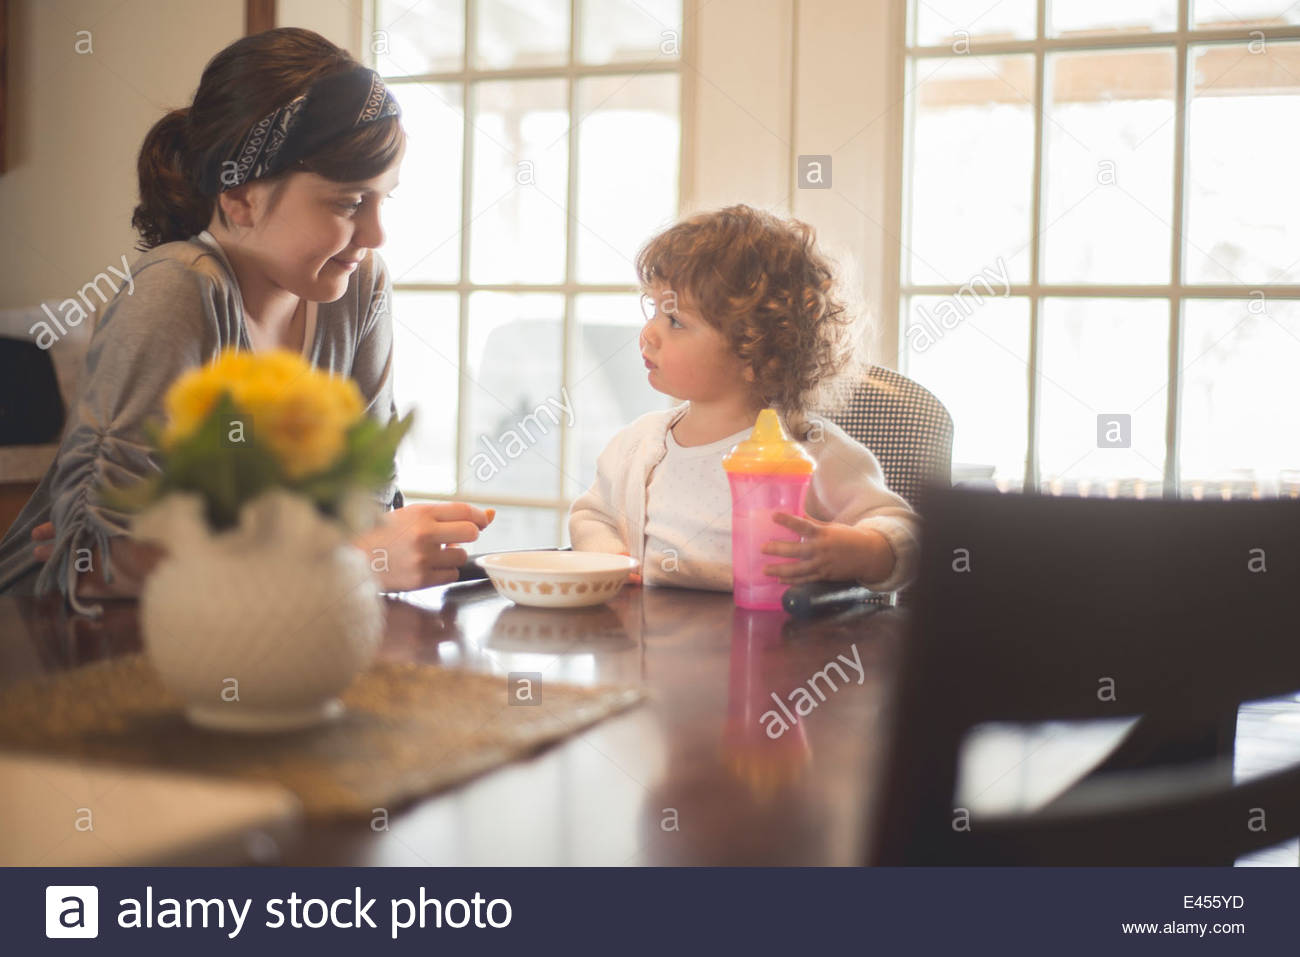 Older sister sitting at breakfast table with younger sister - Stock Image